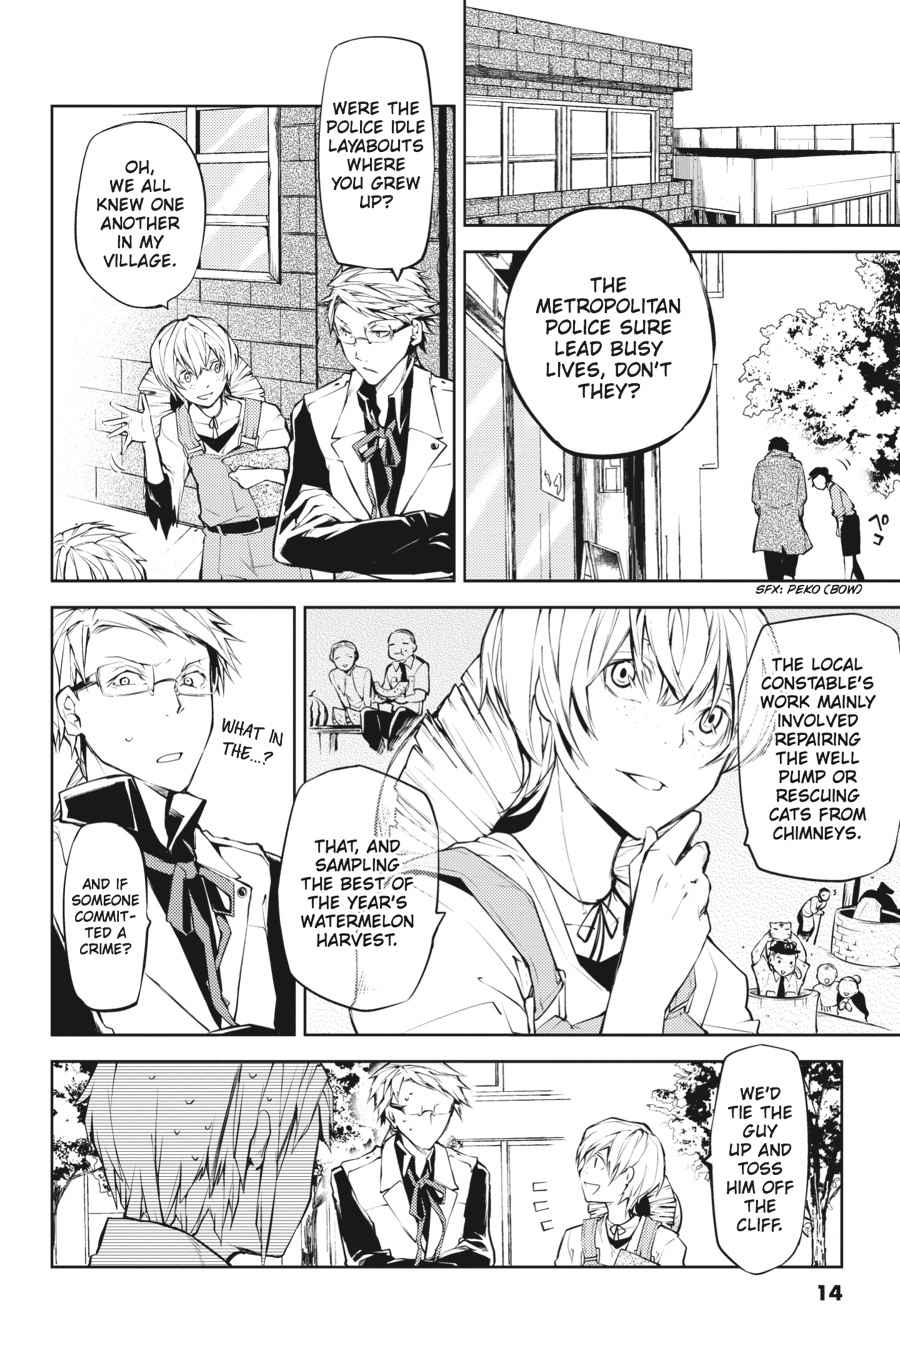 Bungou Stray Dogs Chapter 13 Page 14